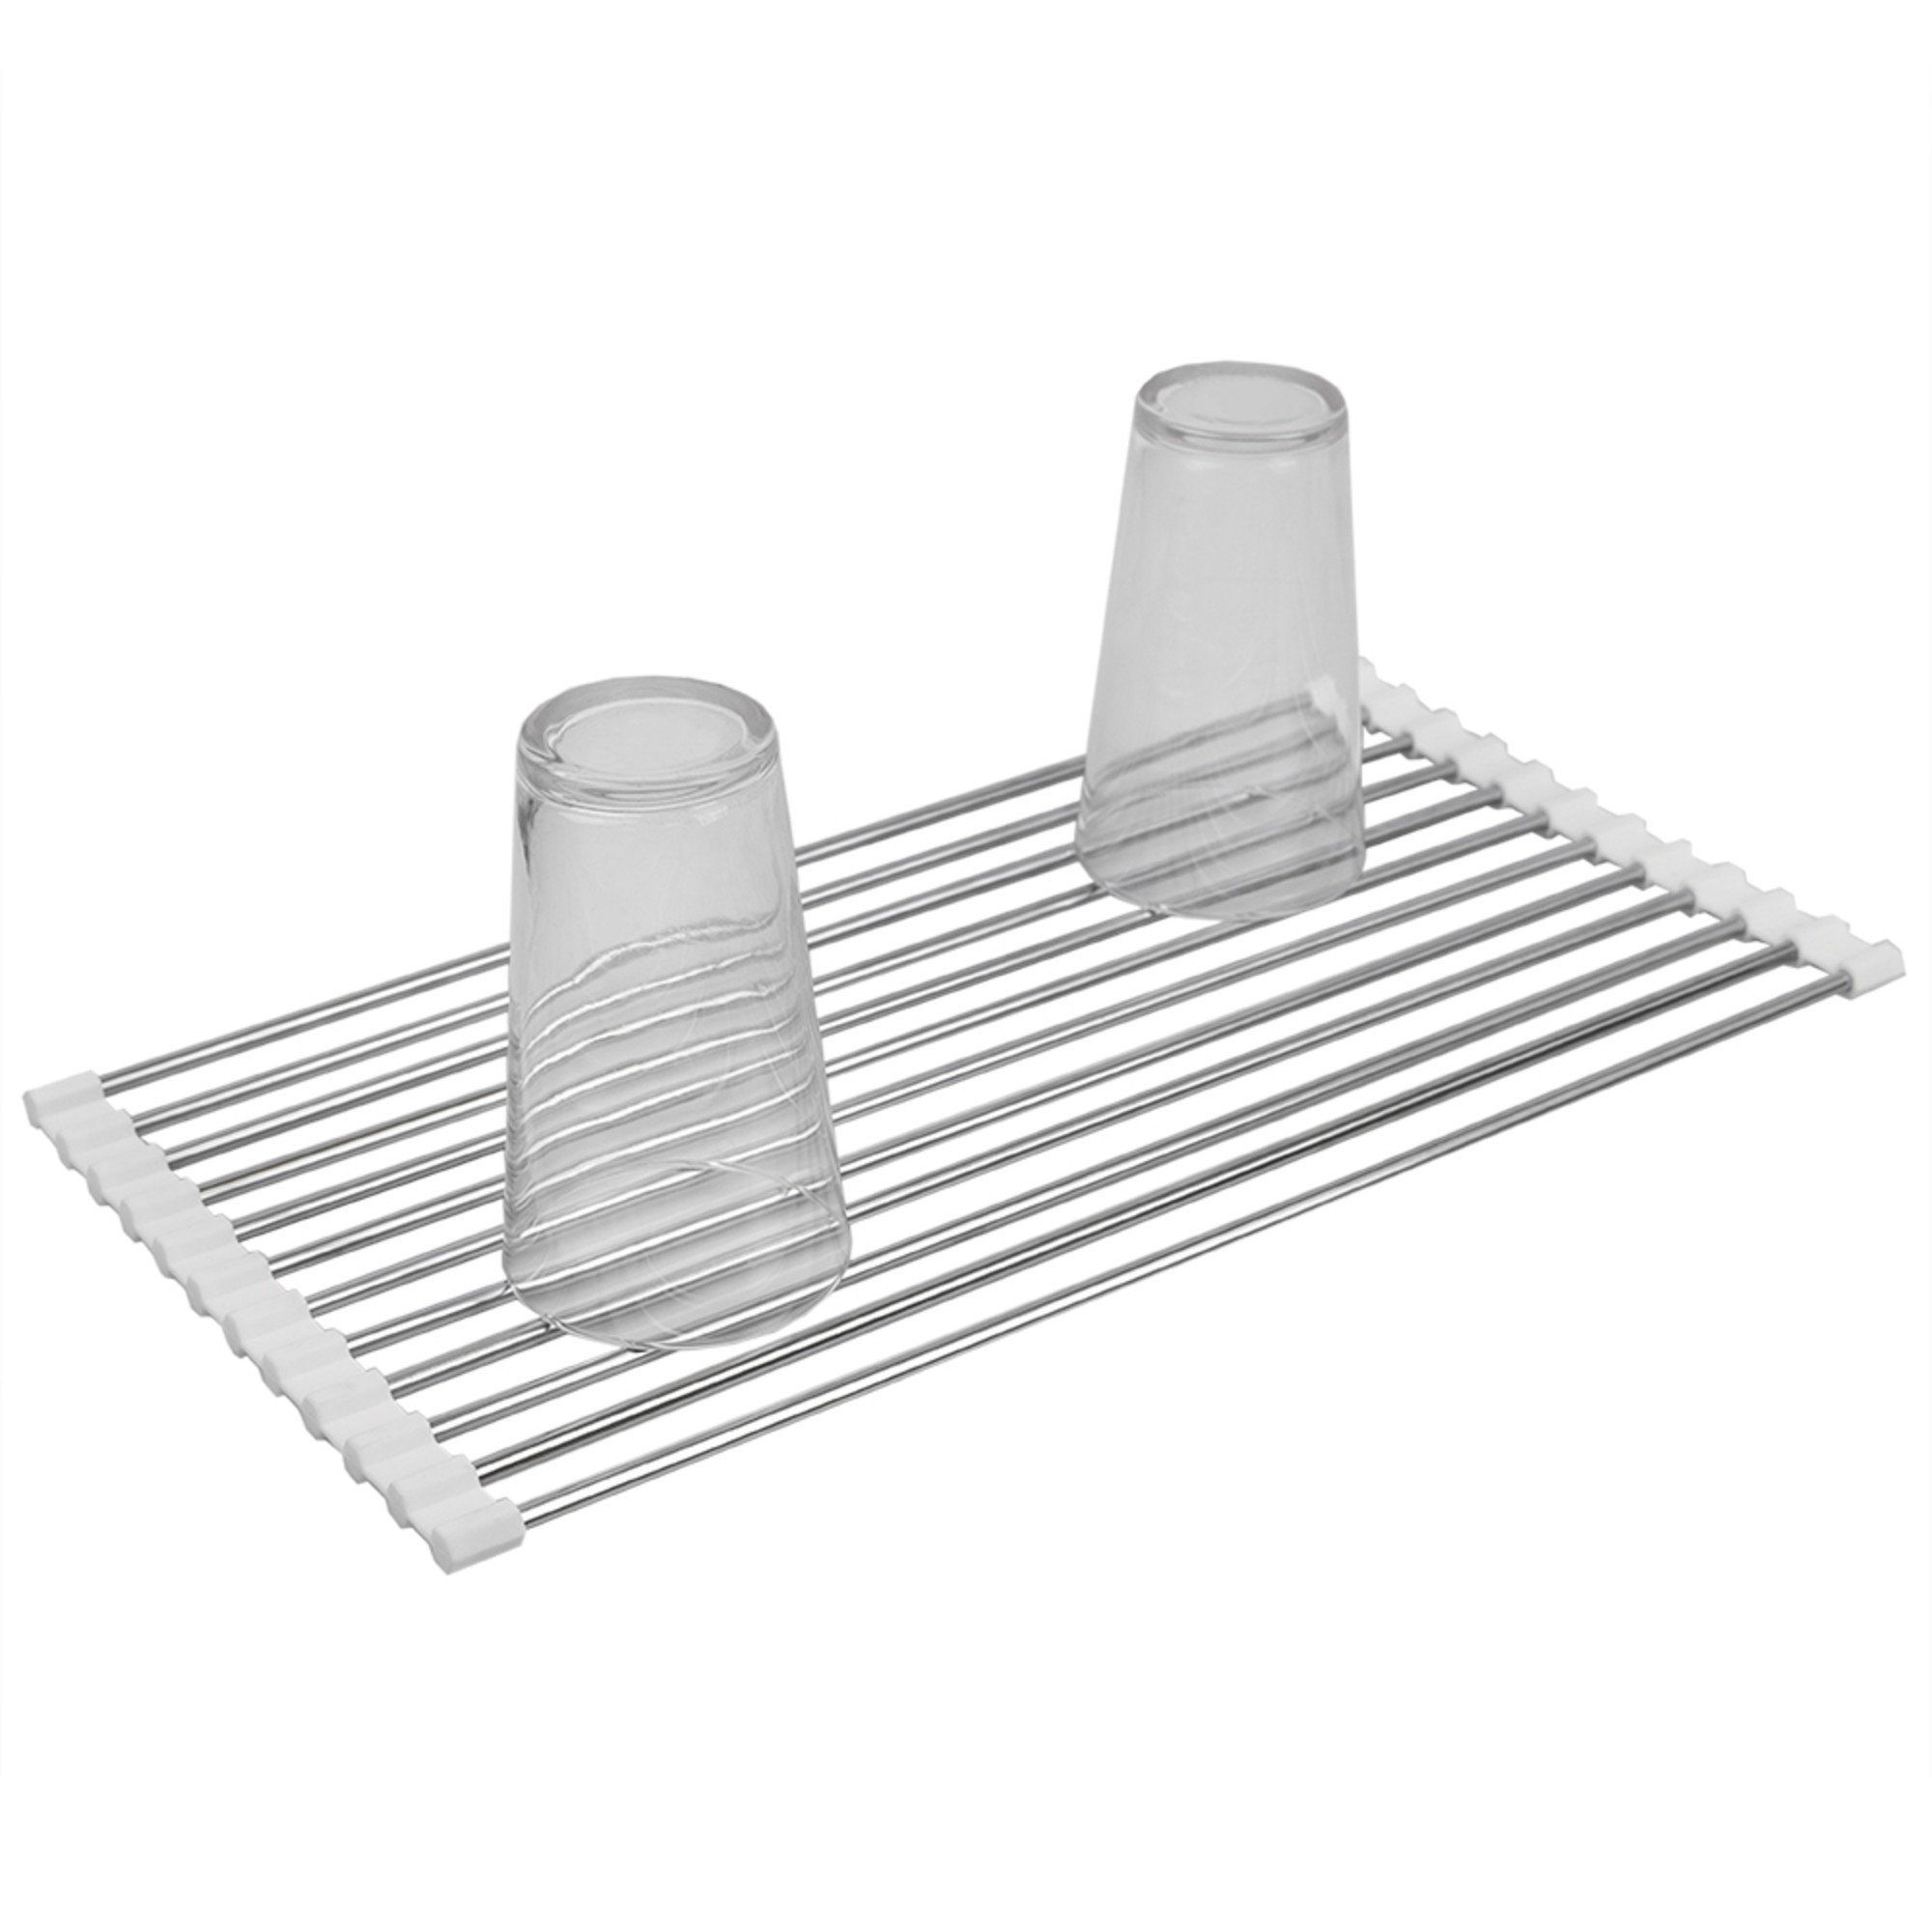 Home Basics Multi-Purpose Flexible Silicone and Stainless Steel Roll Up Dish Drying Rack, White